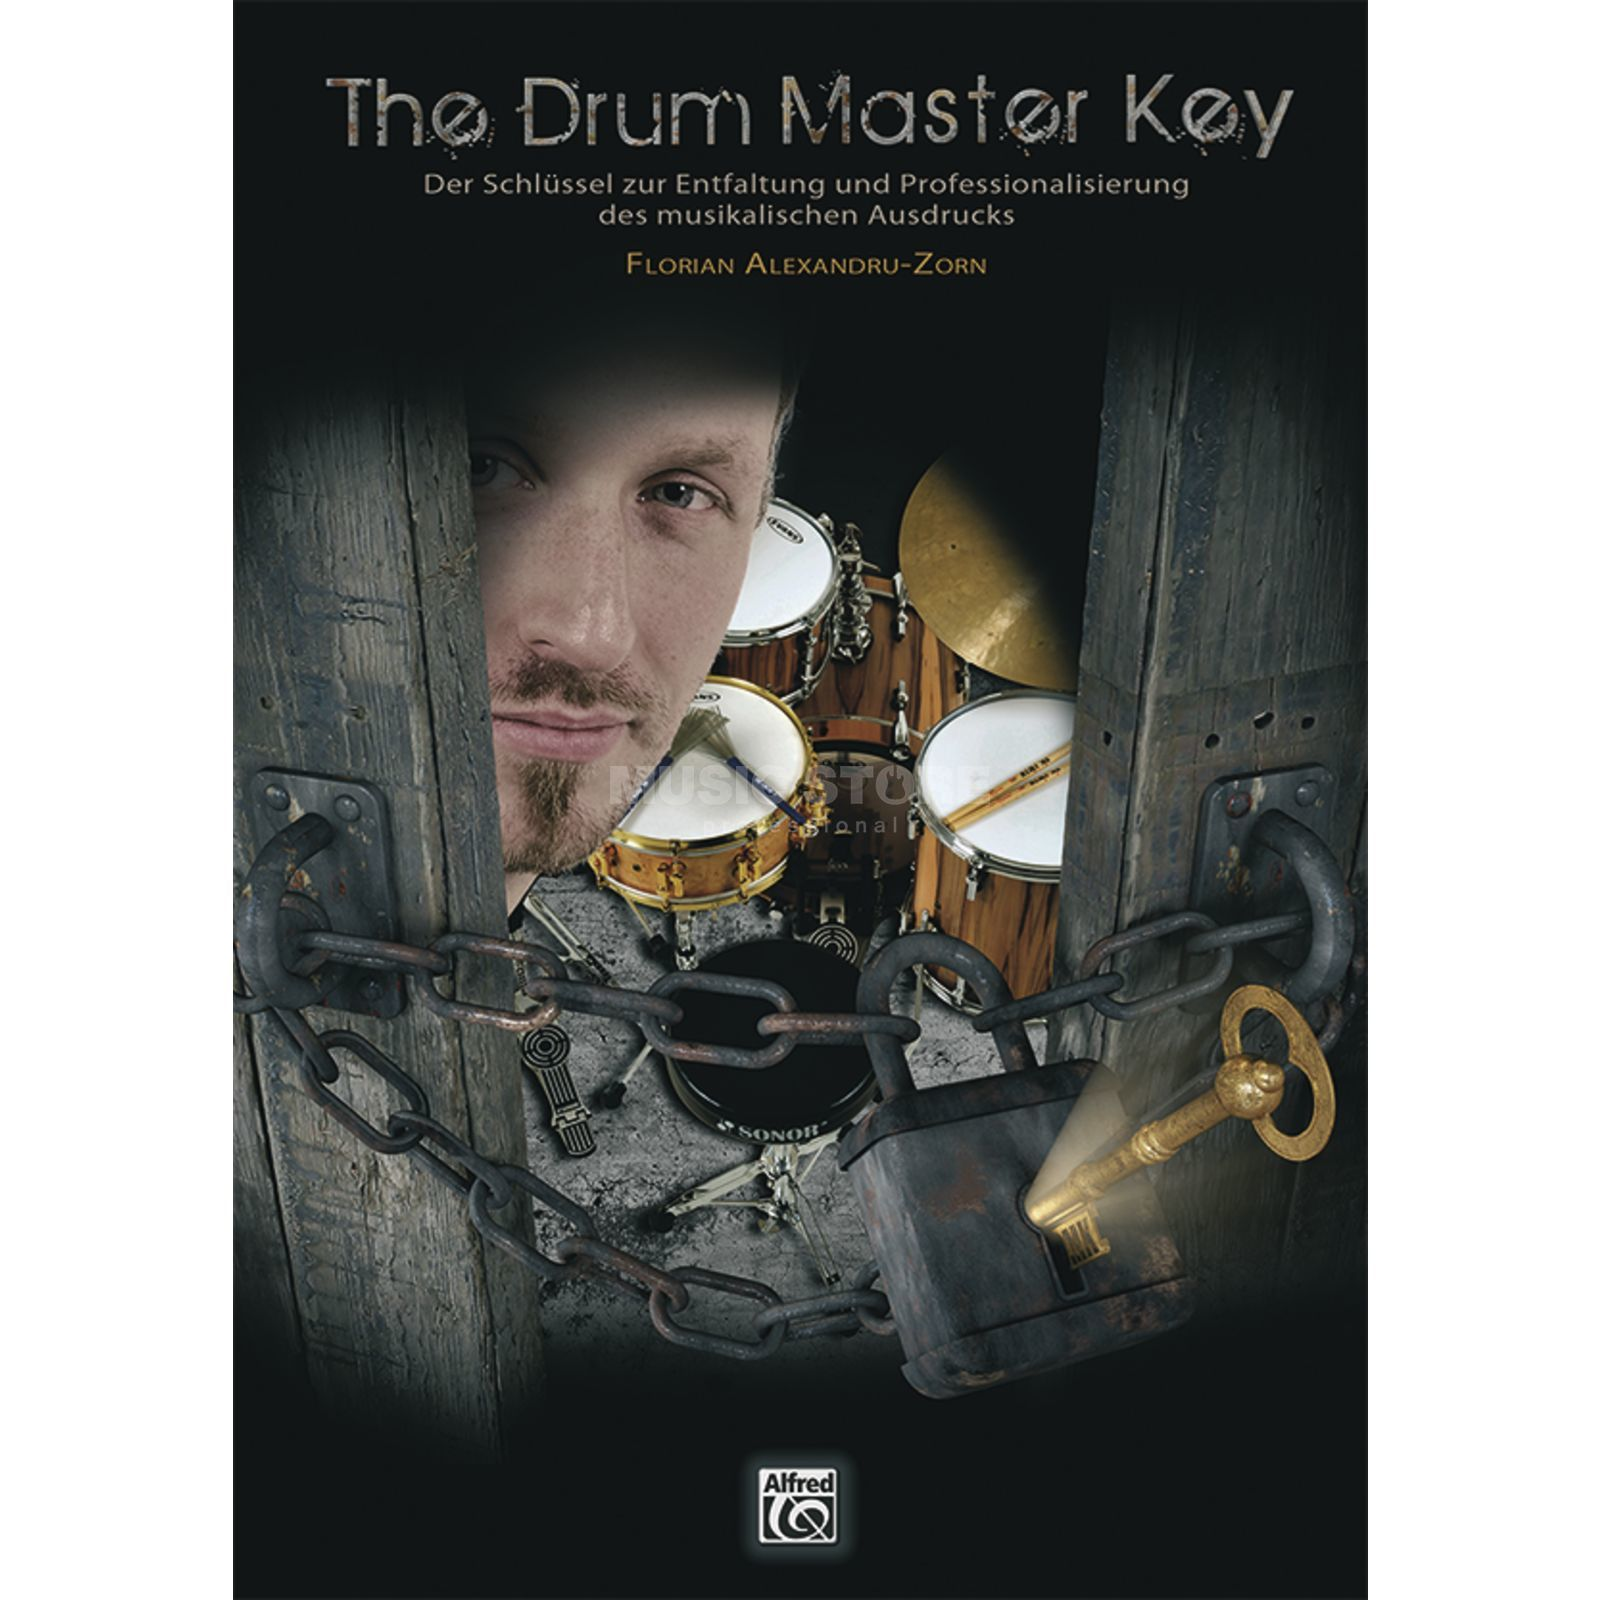 Alfred Music The Drum Master Key Alexandru-Zorn Produktbild